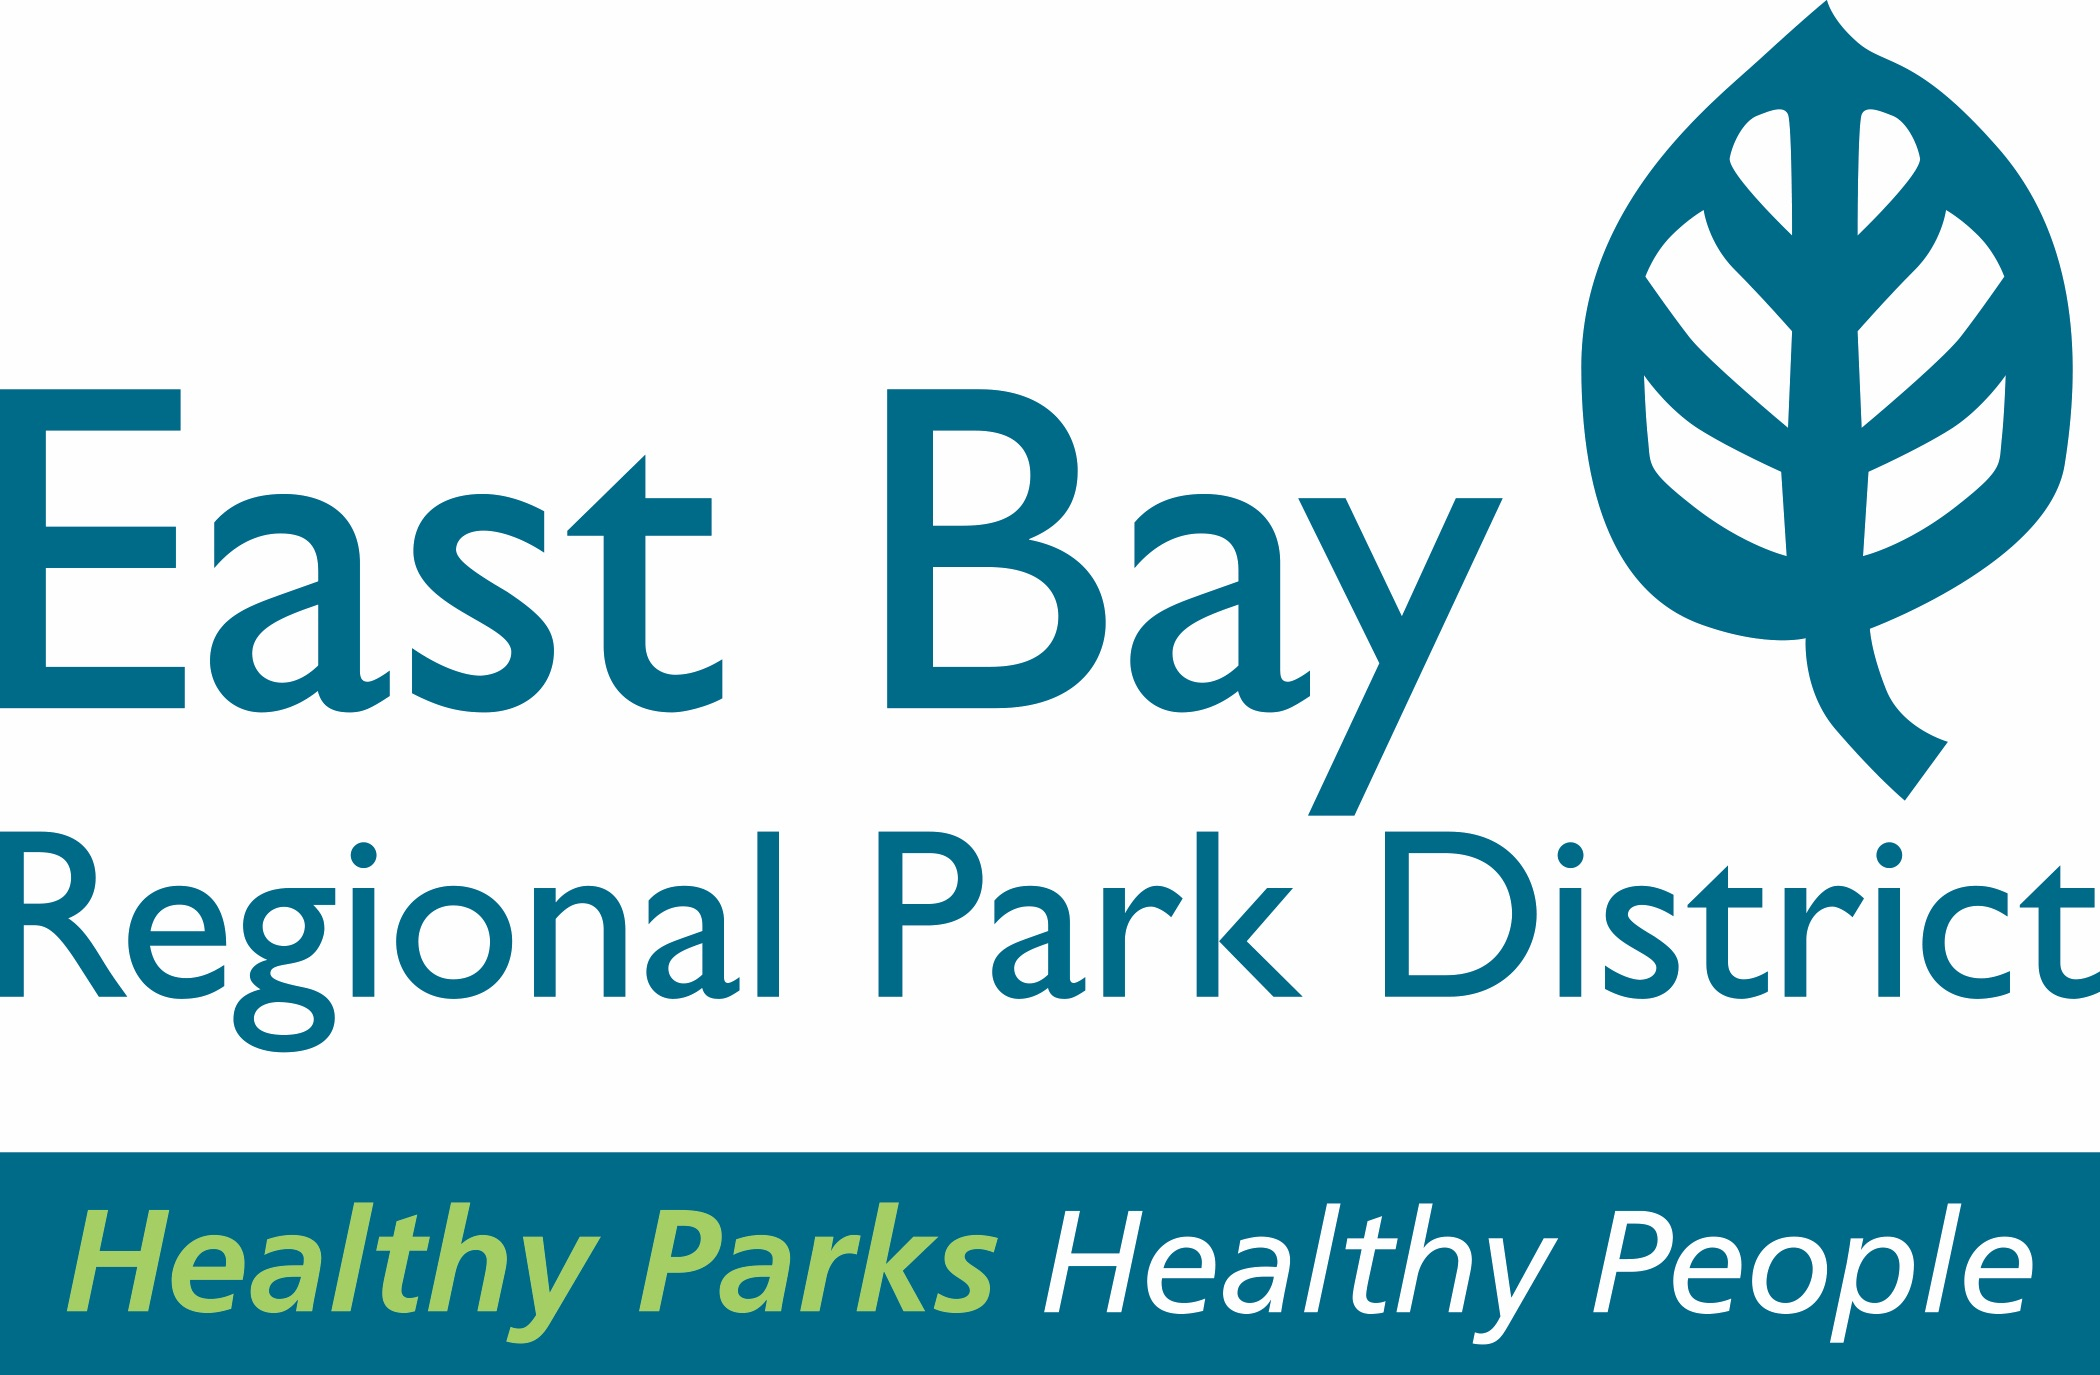 EBRPD-HPHP-Logo_Teal_high-res.jpg